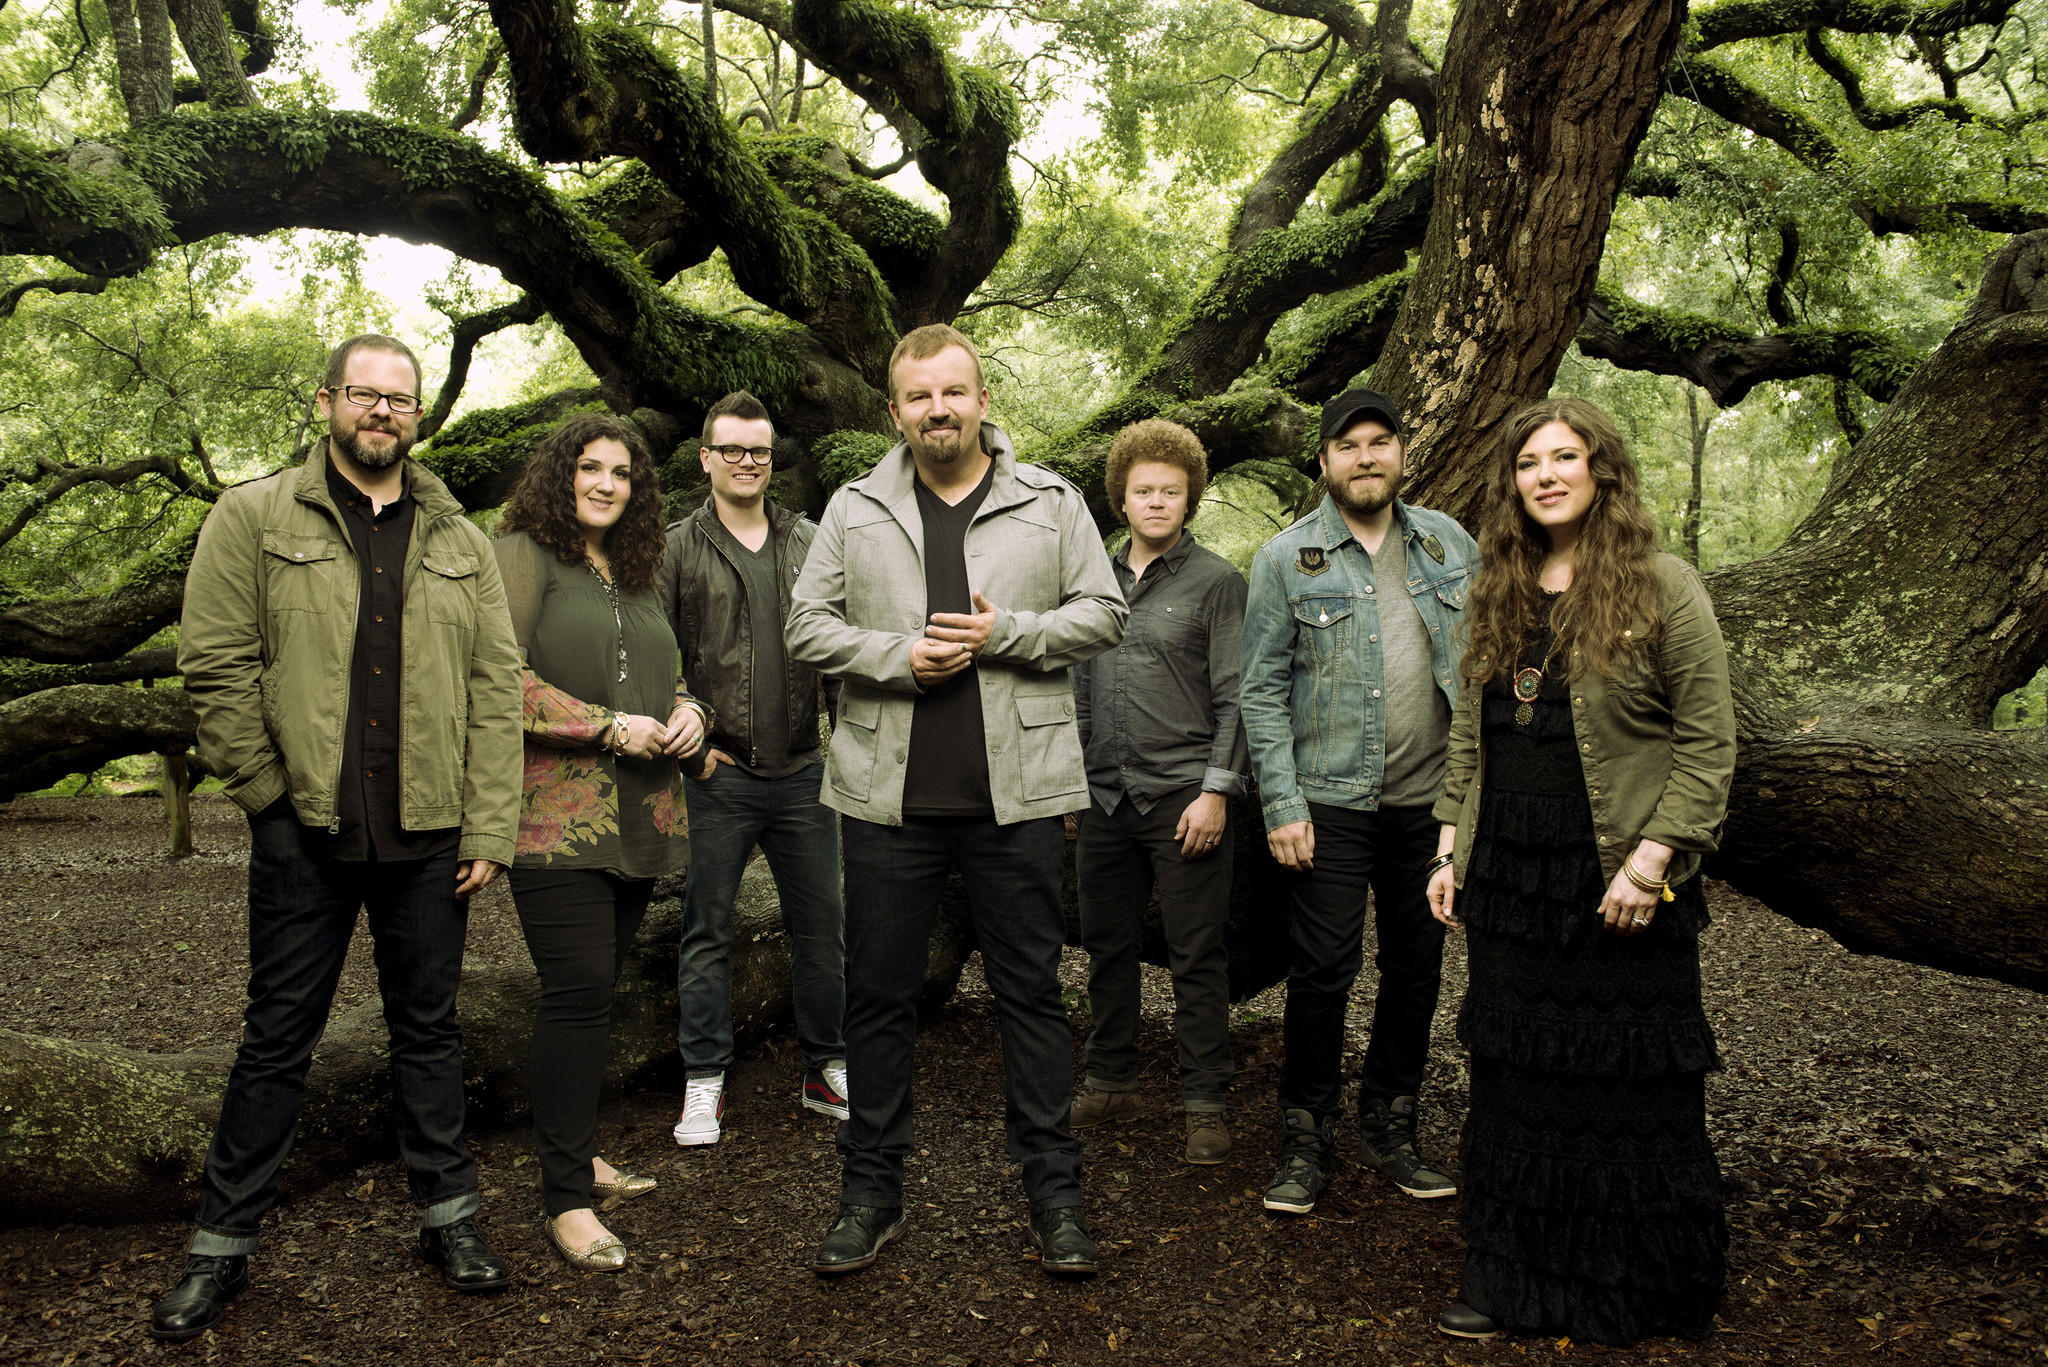 Christian rock act Casting Crowns, led by singer Mark Hall (center).